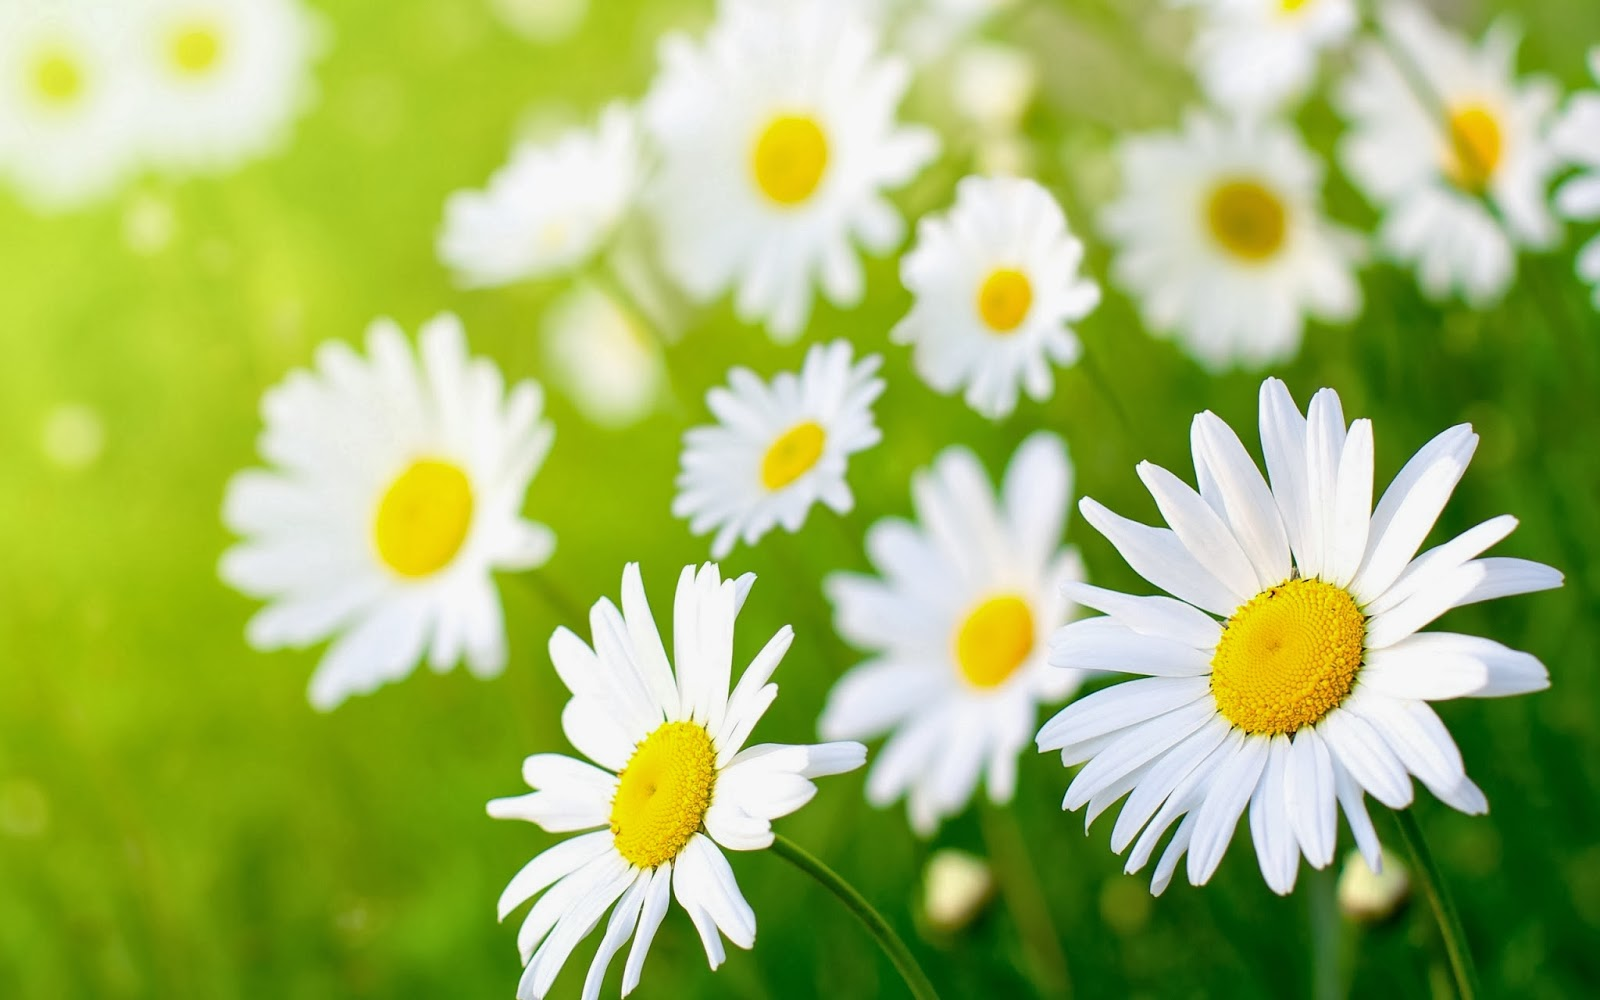 Daisy flower wallpaper - beautiful desktop wallpapers 2014